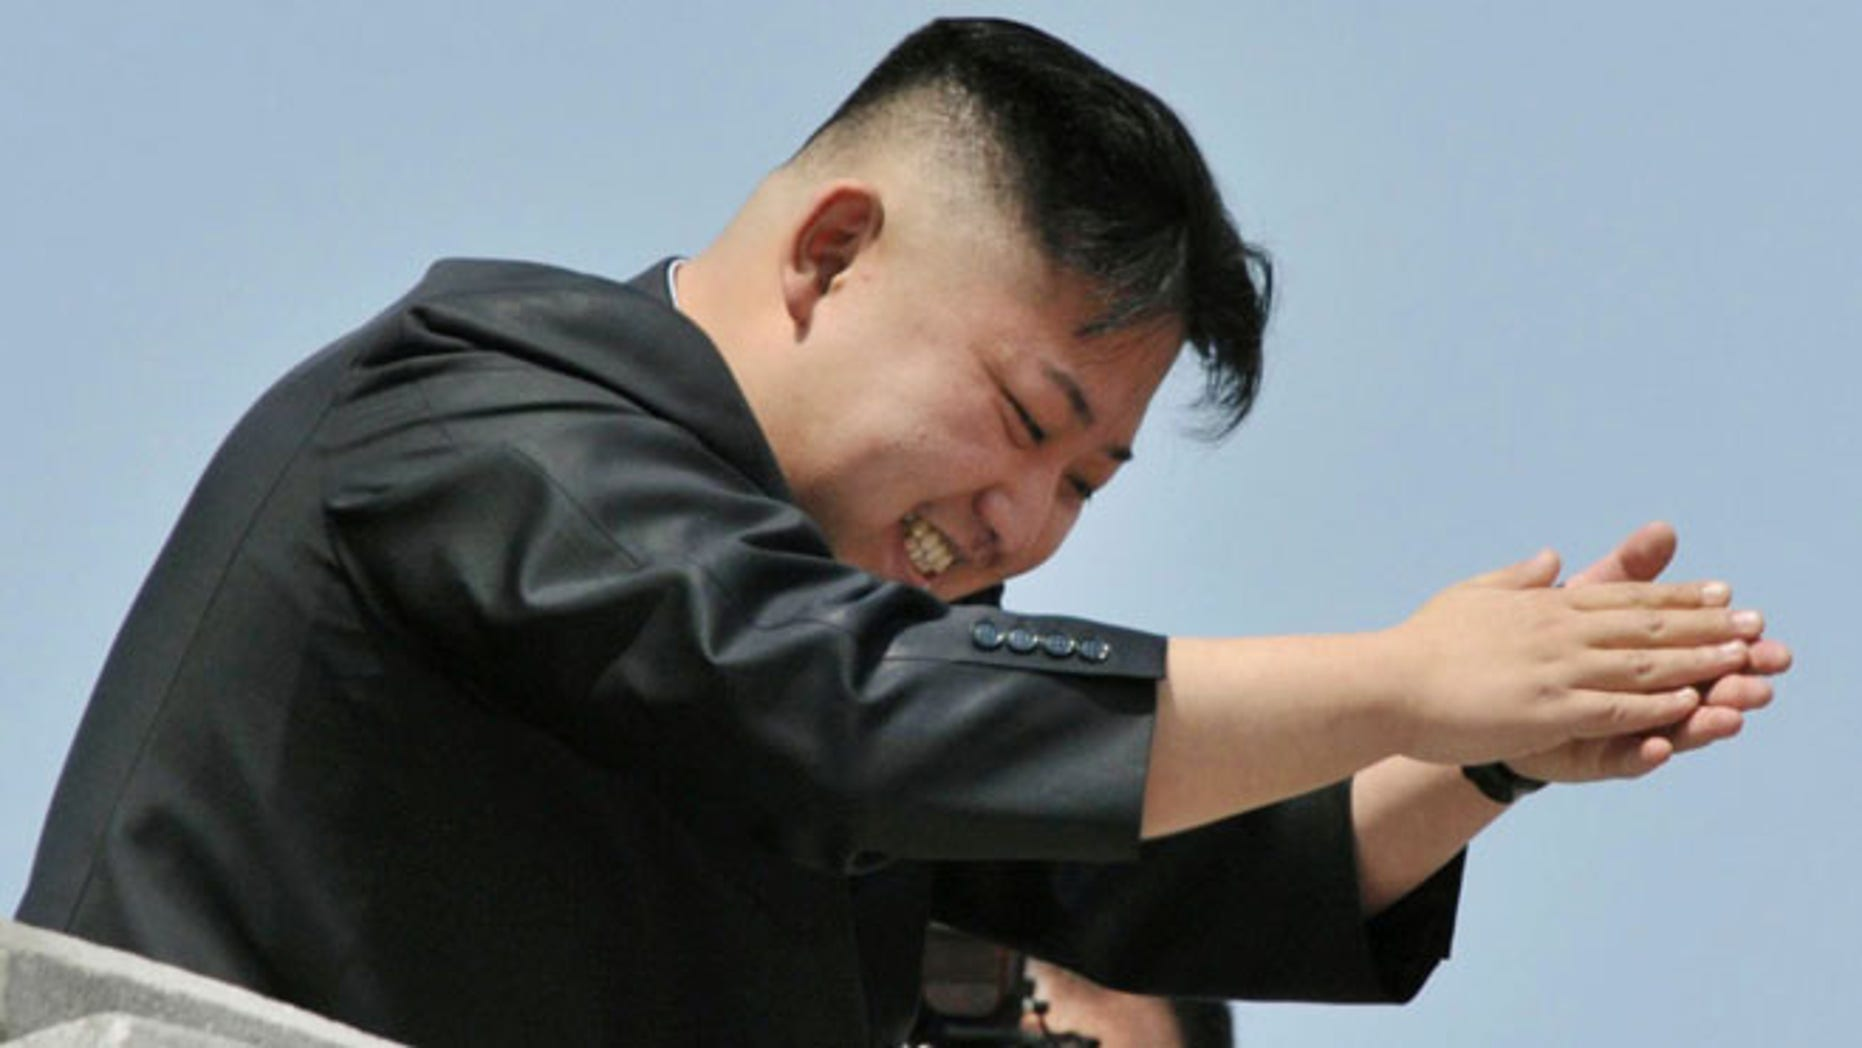 April 15, 2012: North Korean leader Kim Jong-un applauds as he leaves after a mass military parade in Pyongyang.